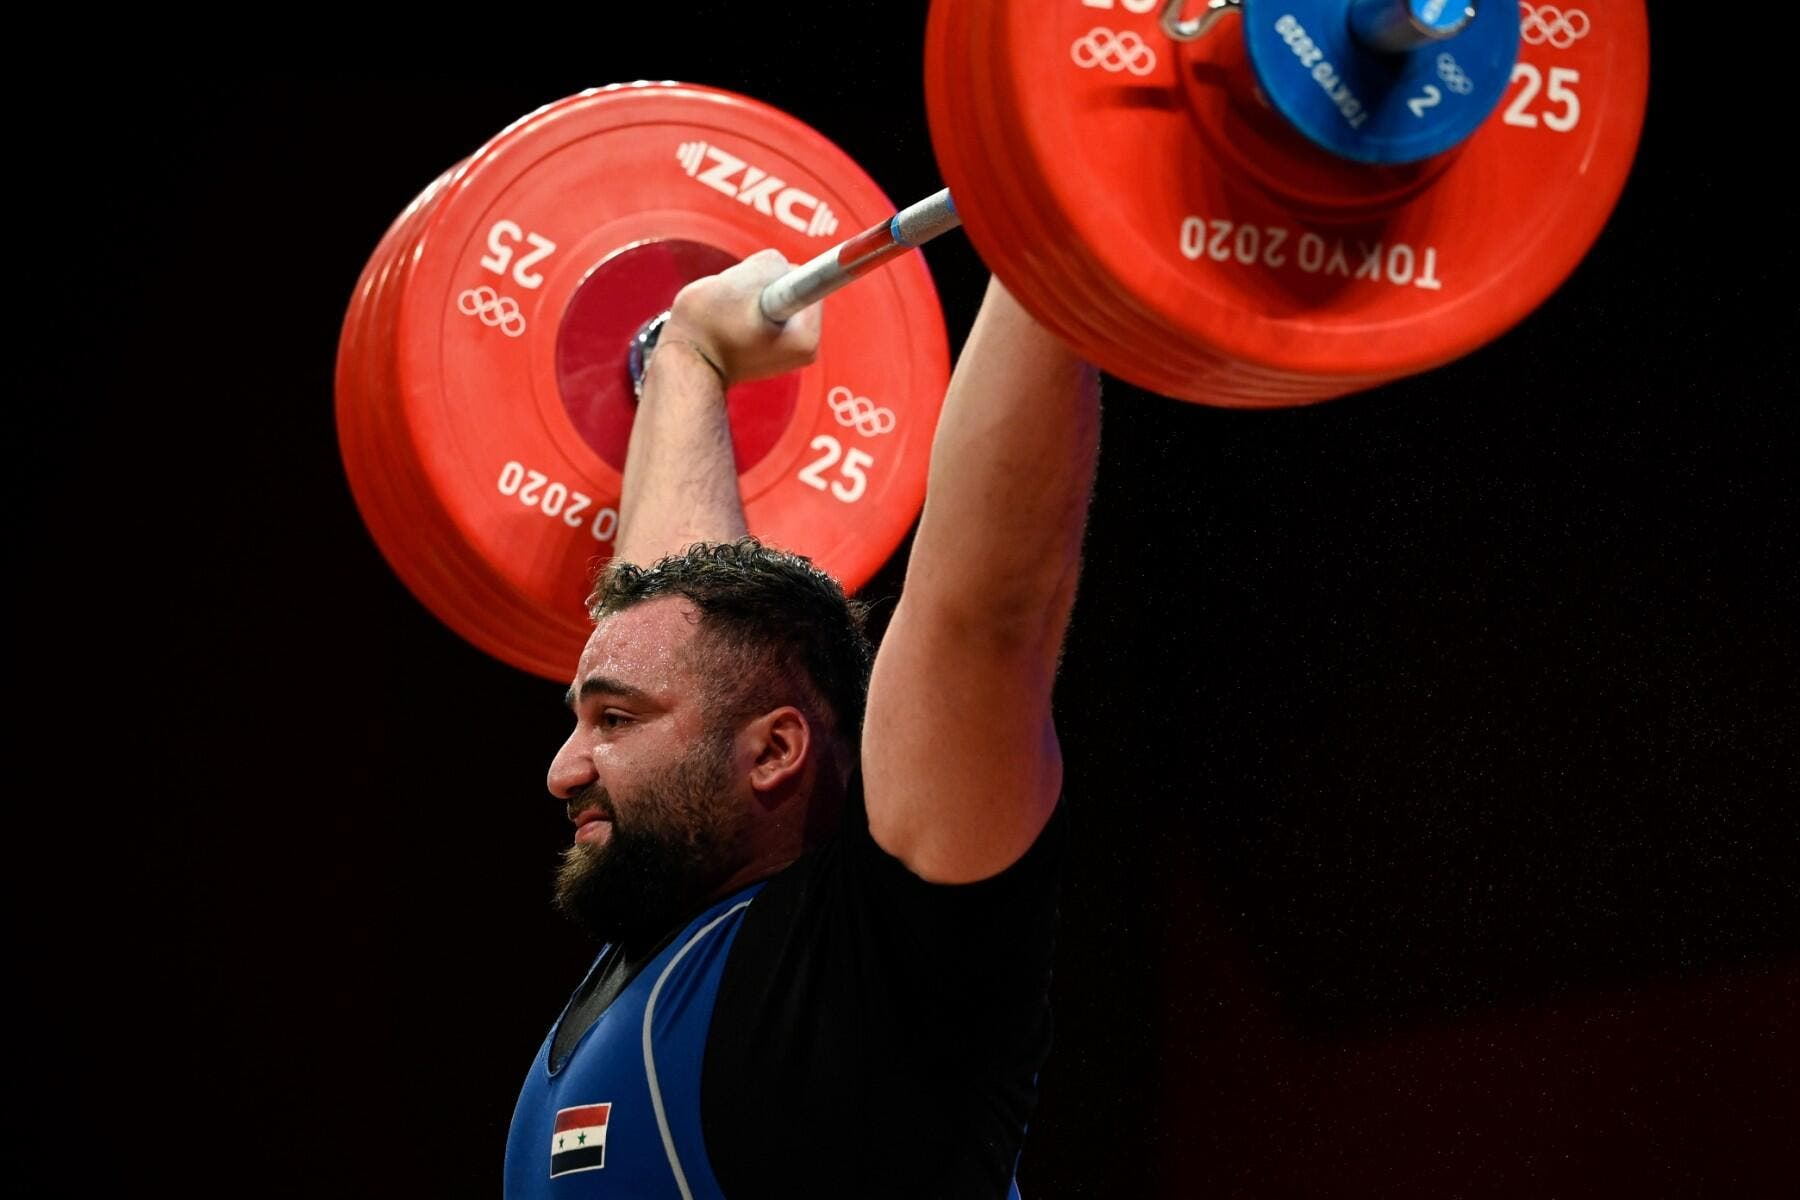 Tokyo 2020: Weightlifter Maan Asaad Takes First Medal for Syria